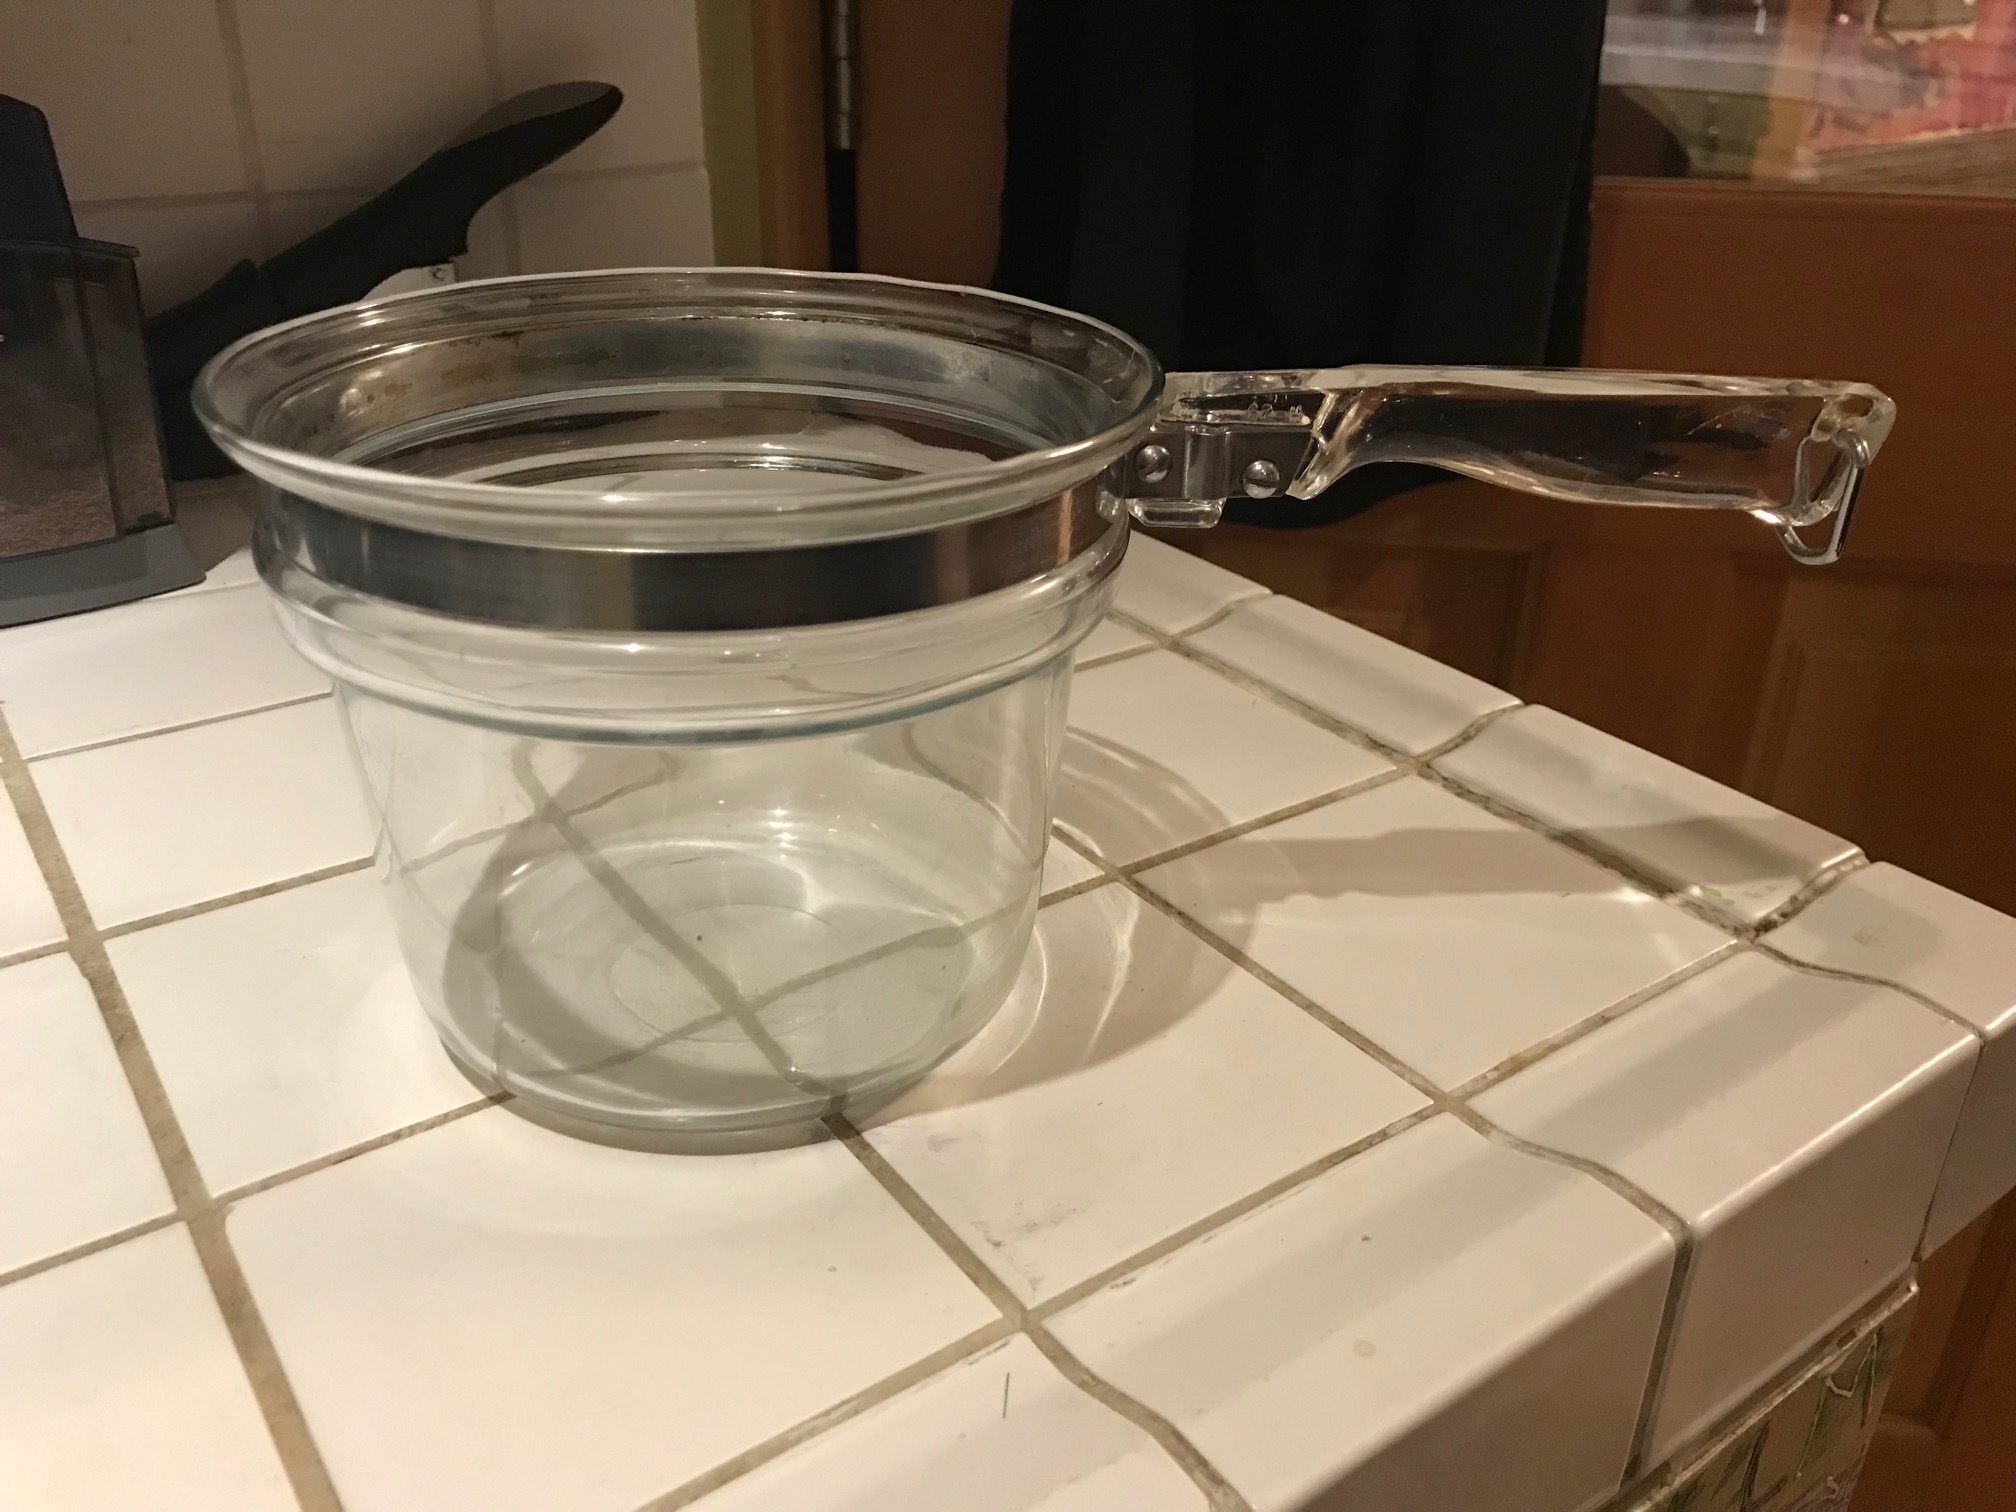 Made In USA Vintage Pyrex Clear Glass Double Boiler Cooking Pot: 216 ppm Lead